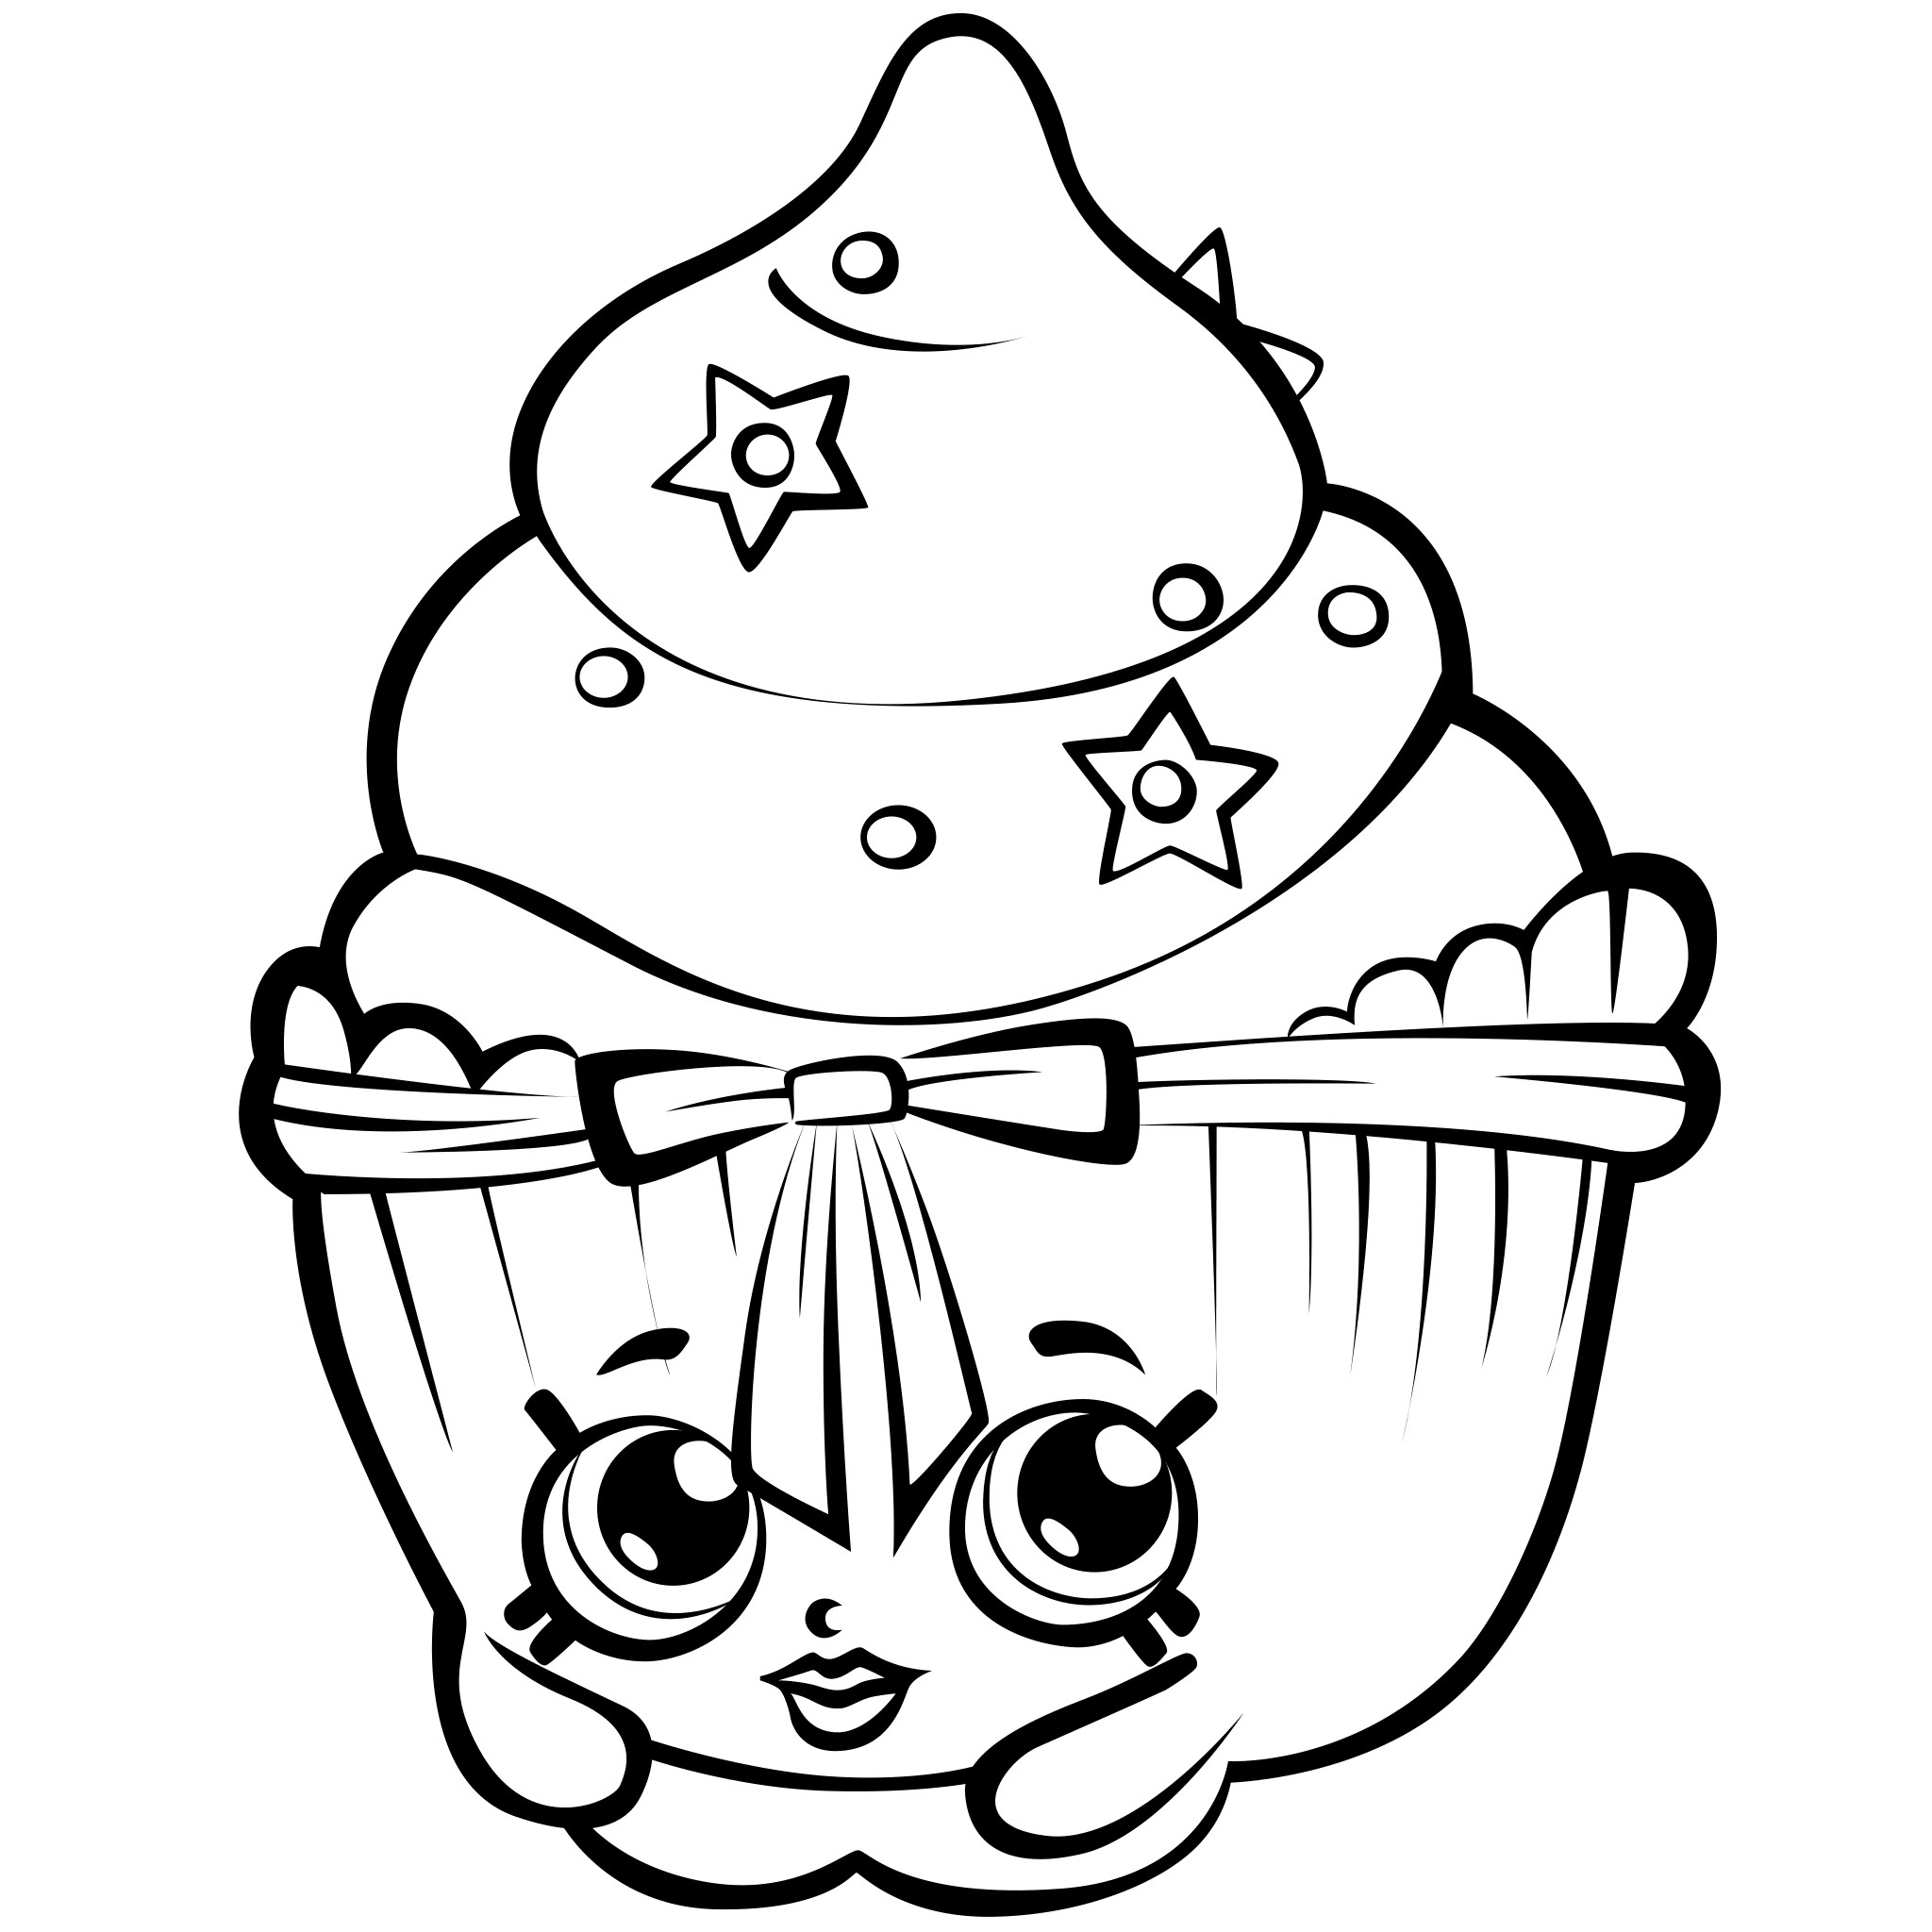 2048x2048 Best Of Free Printable Shopkins Coloring Pages Collection